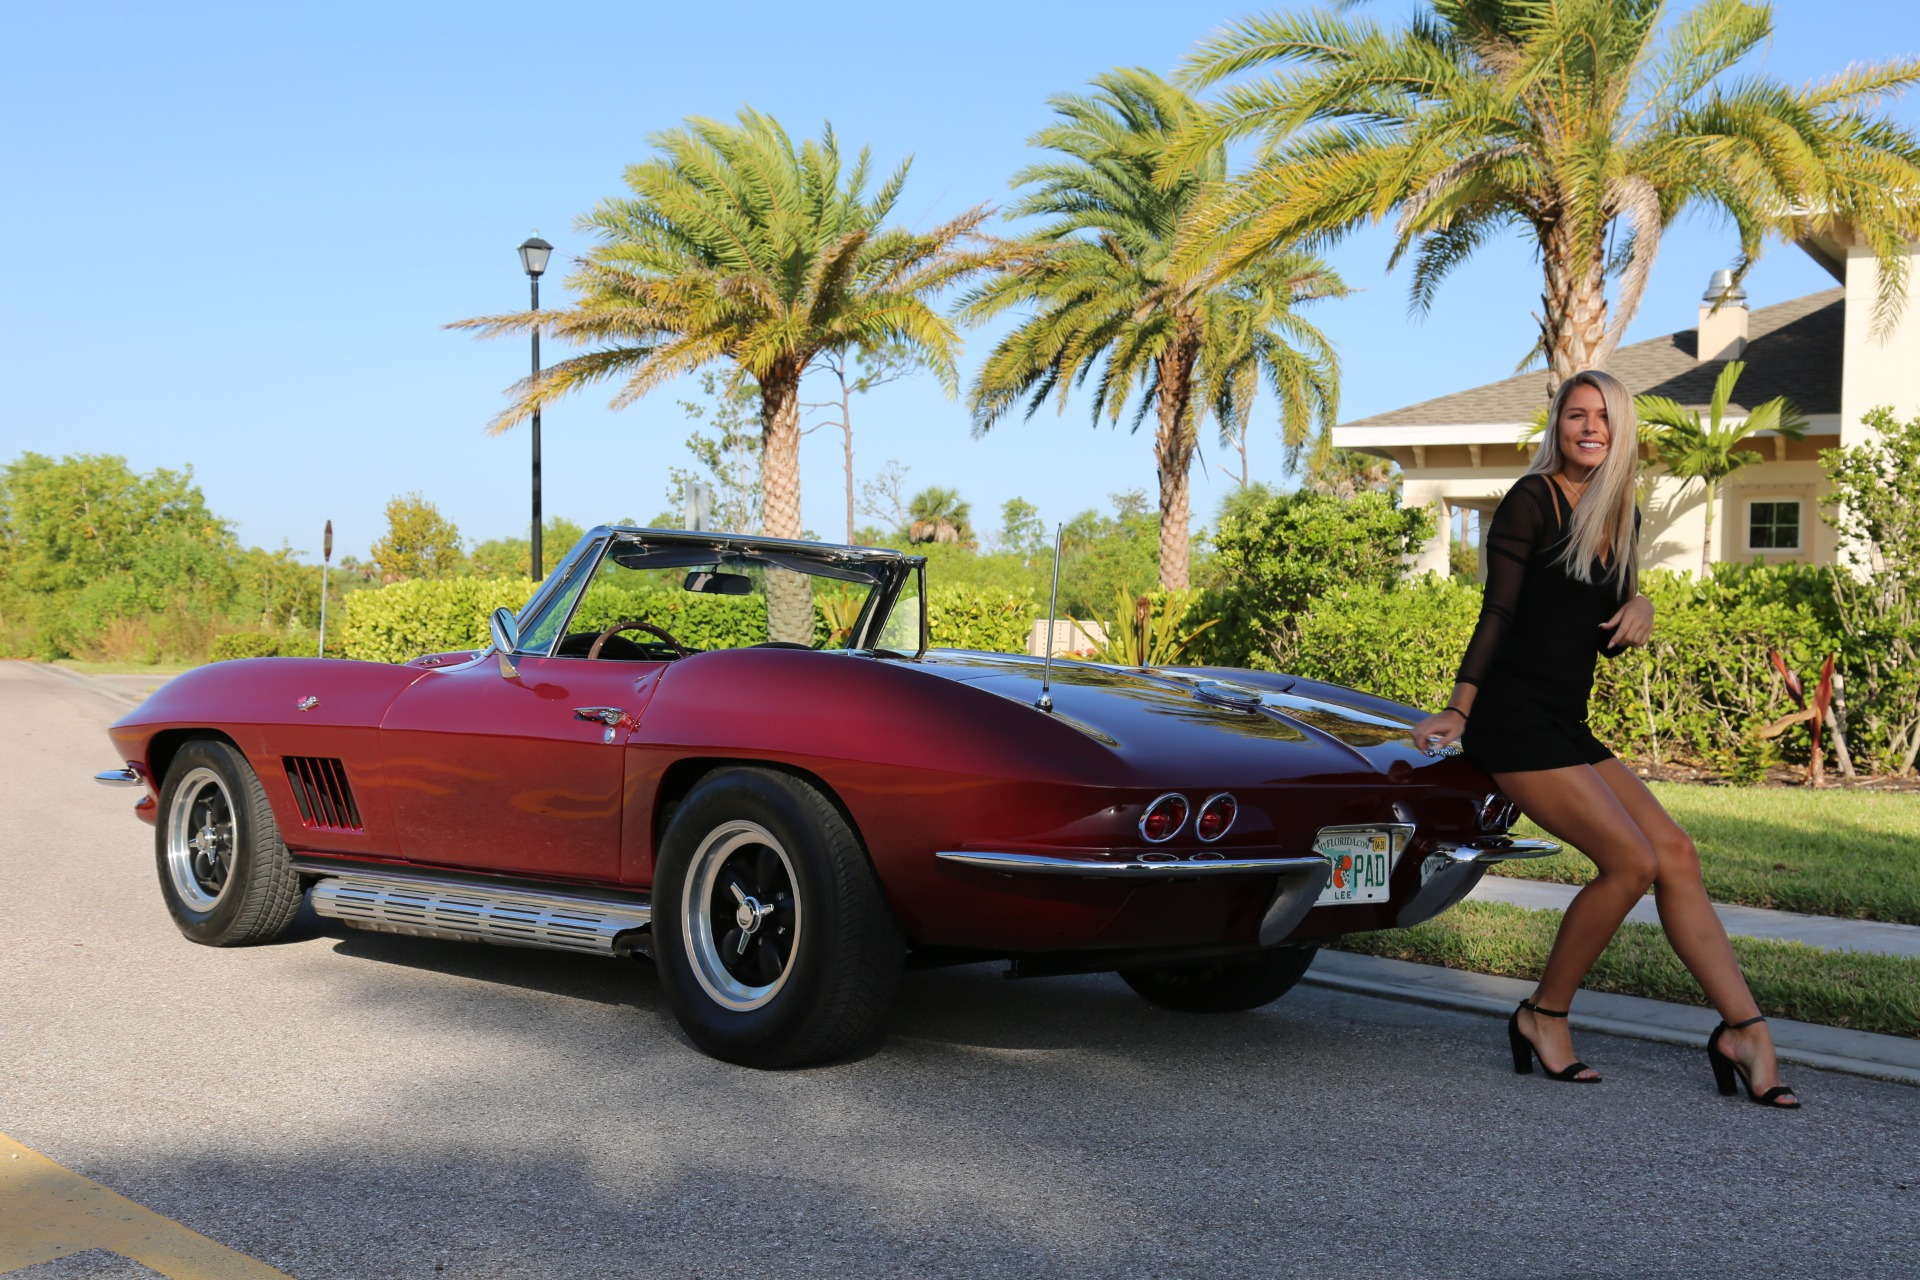 Used 1964 Chevrolet Corvette Stingray for sale $42,000 at Muscle Cars for Sale Inc. in Fort Myers FL 33912 5